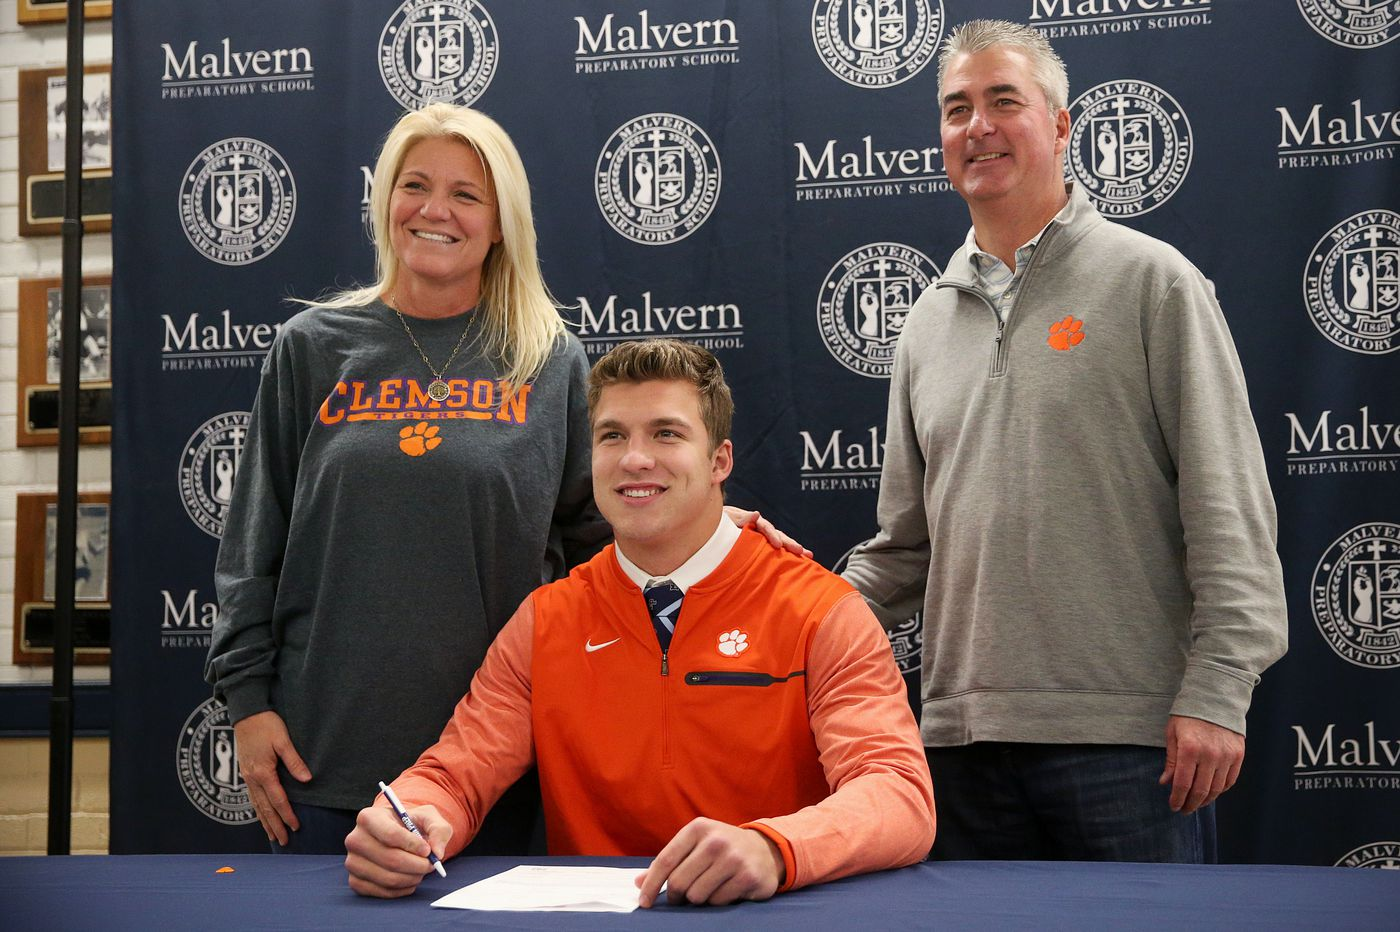 Jake Hornibrook, Keith Maguire among Malvern Prep football players who sign national letters of intent